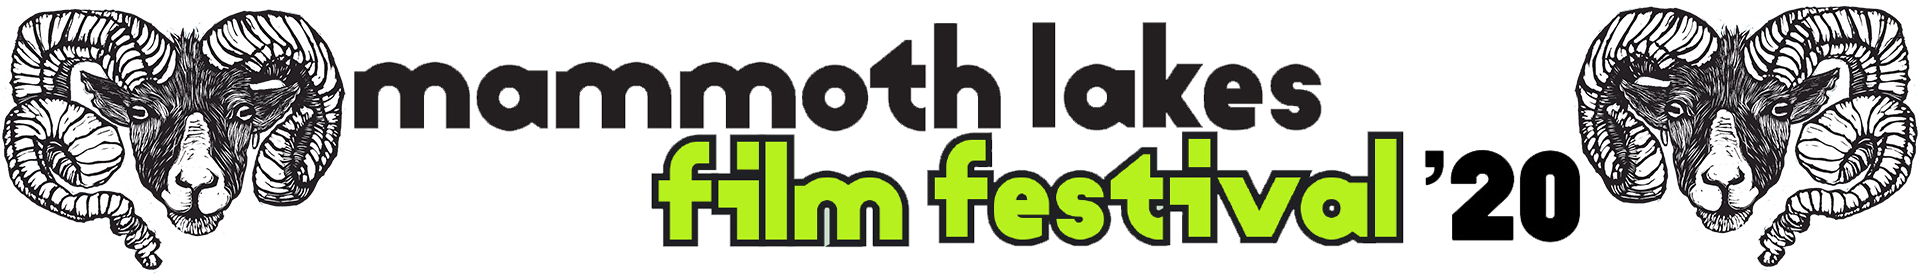 2020 Mammoth Lakes Film Festival